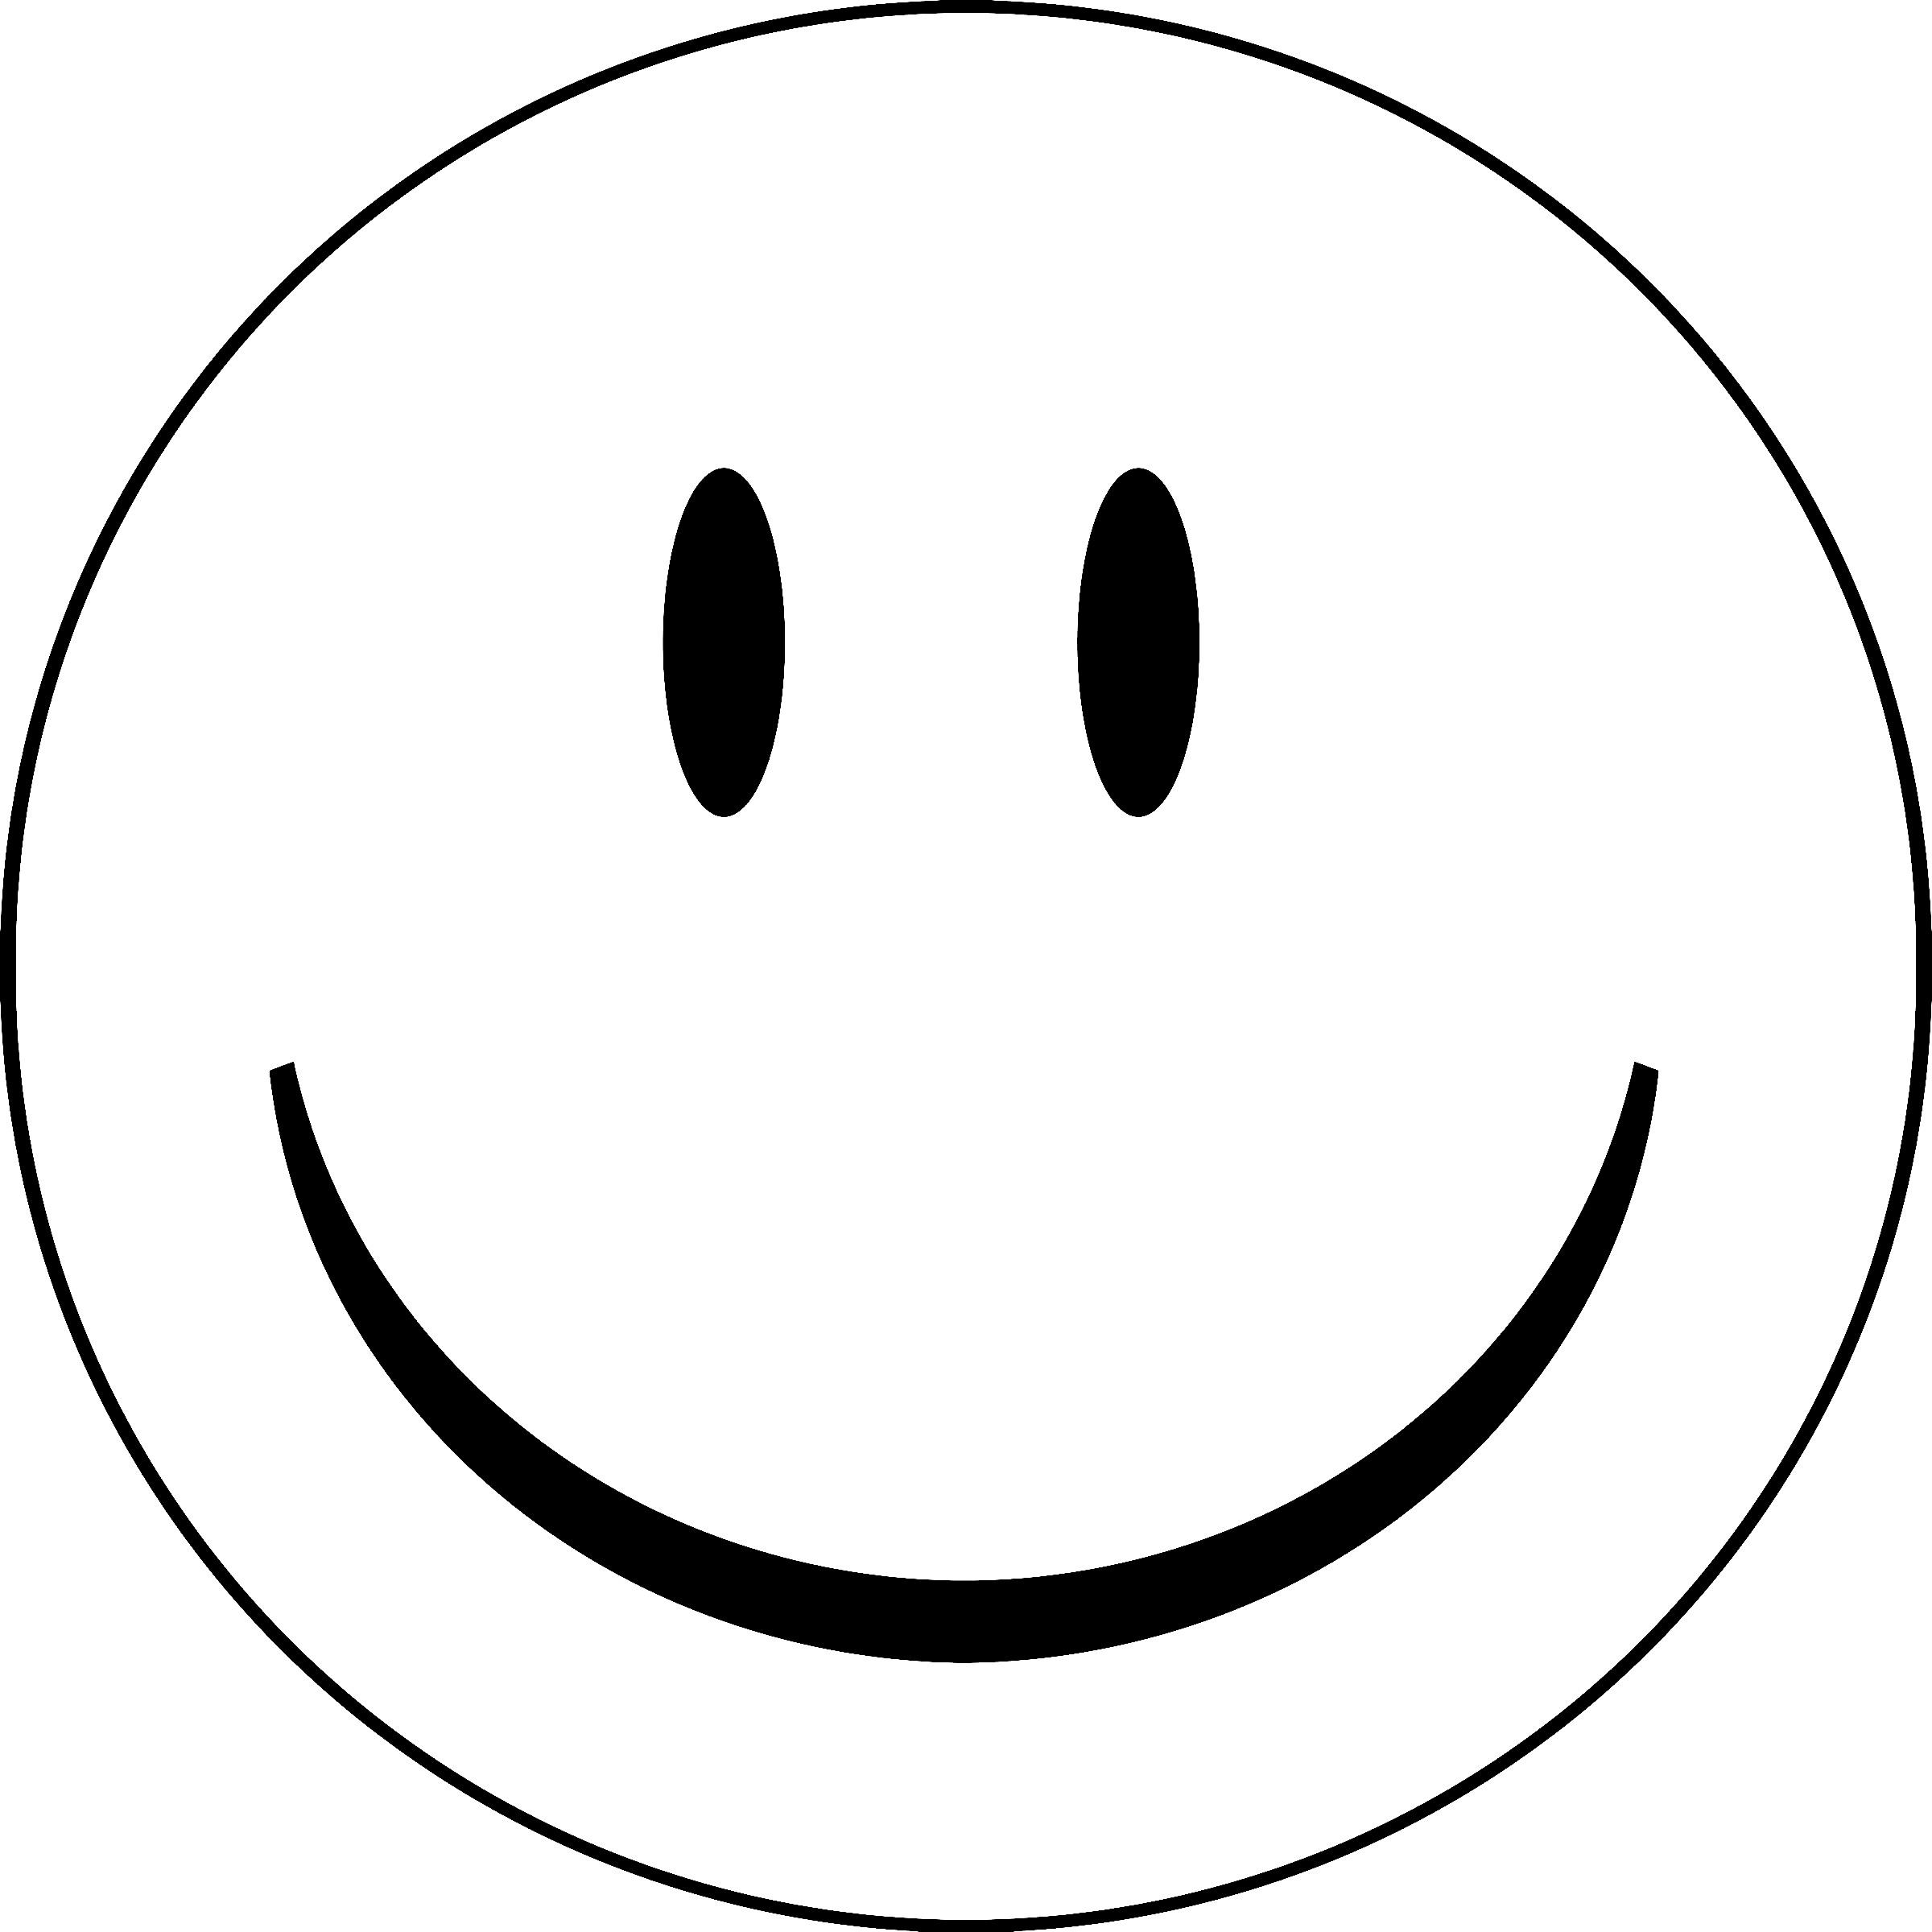 Printable Smiley Faces To Color.